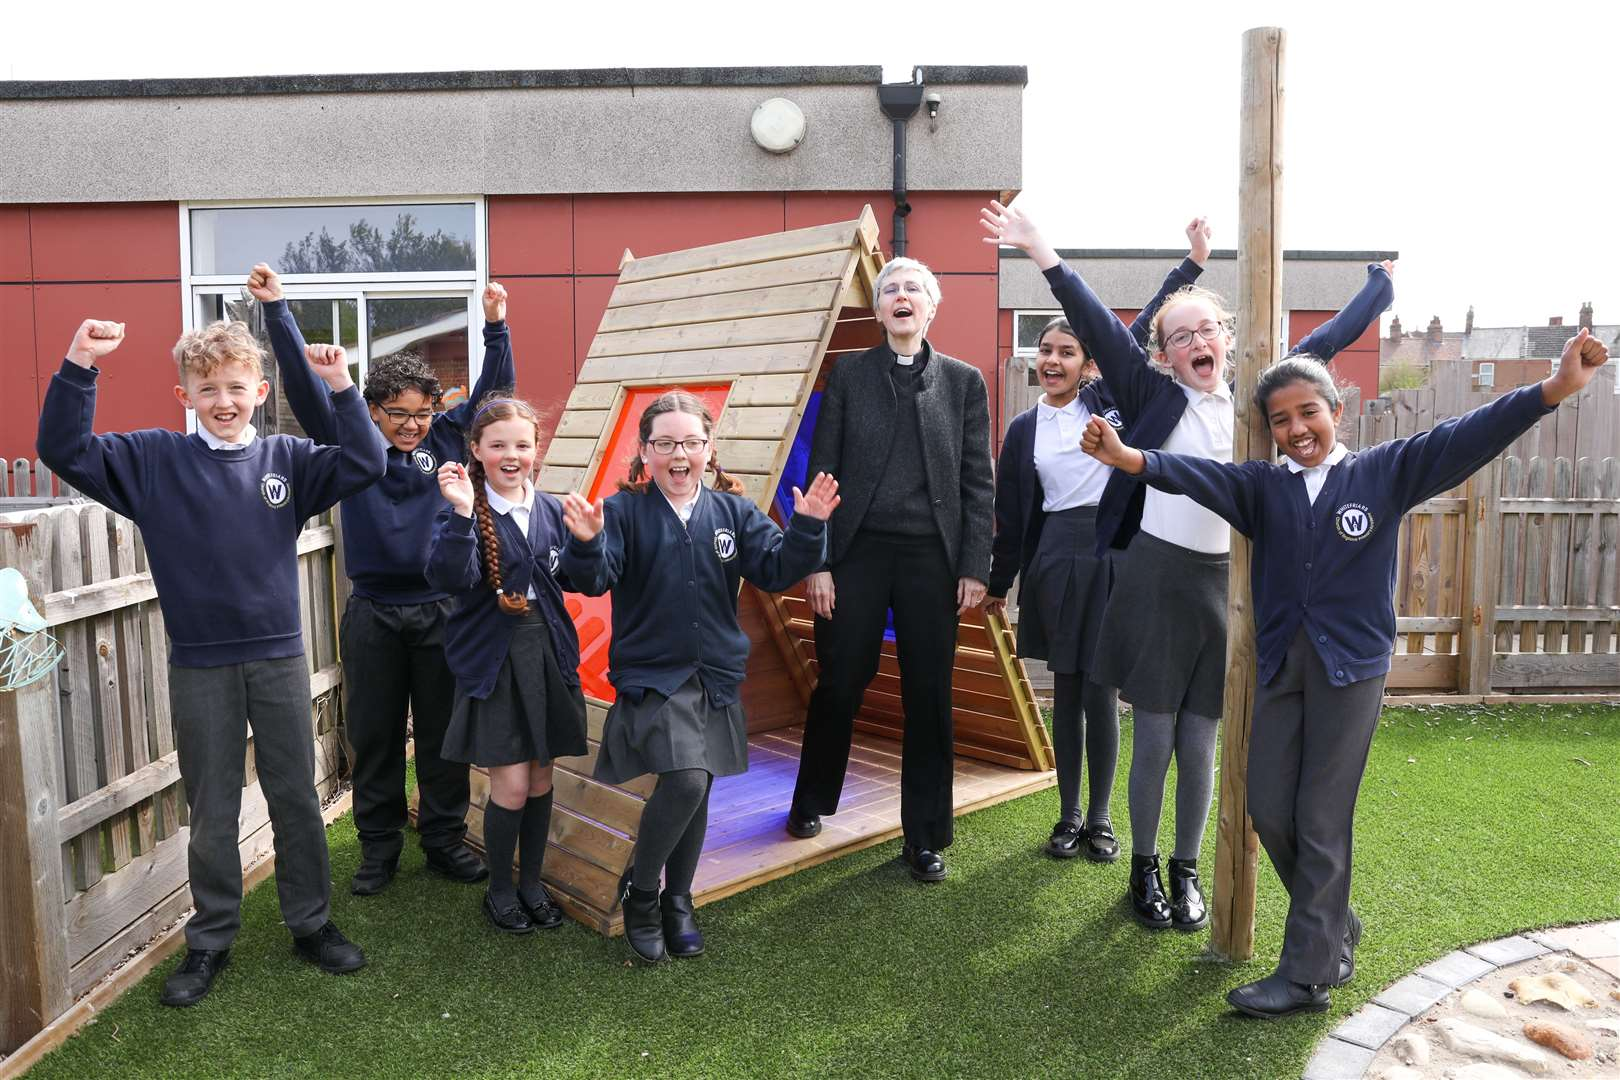 Celebrating a first - Dr Jane Steen with Whitefriars Primary pupils on the day her appointment as the new Bishop of Lynn was announced in April.